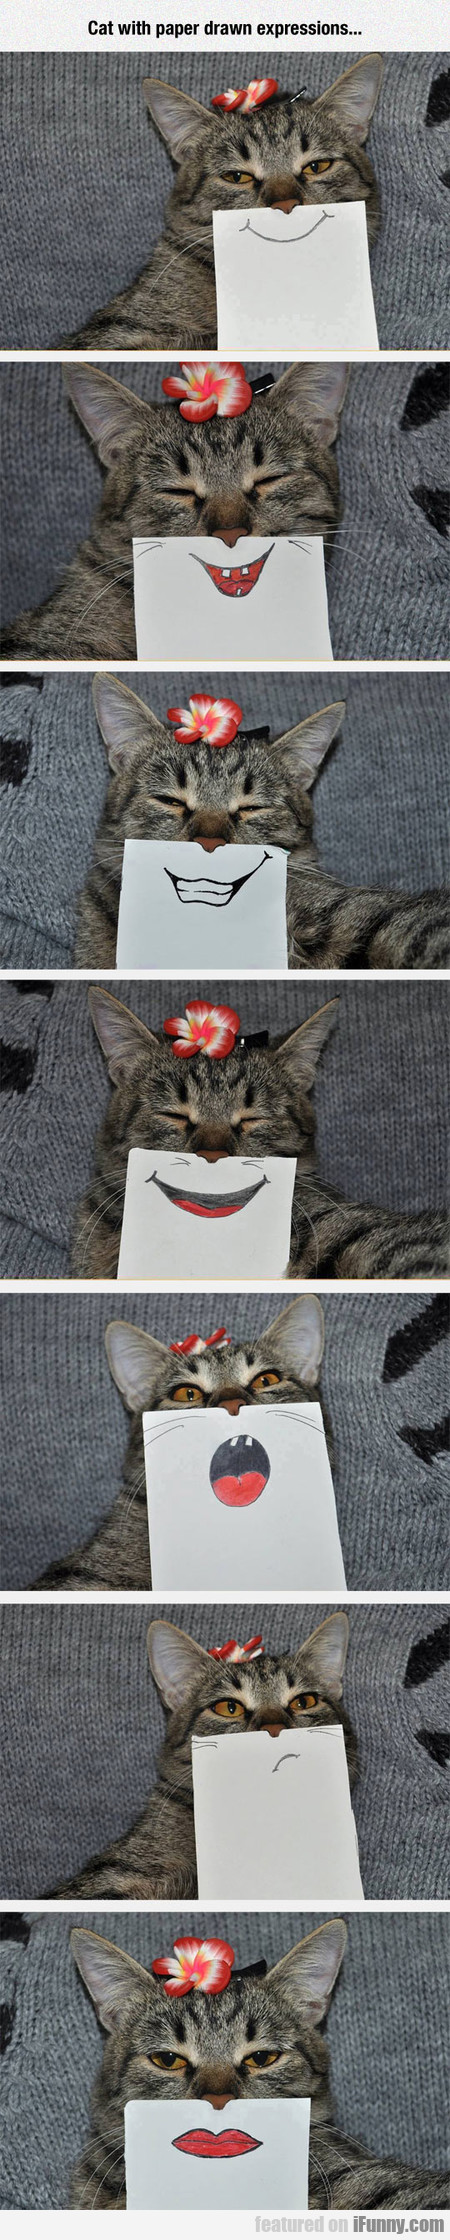 Cat With Paper Drawn Expressions...